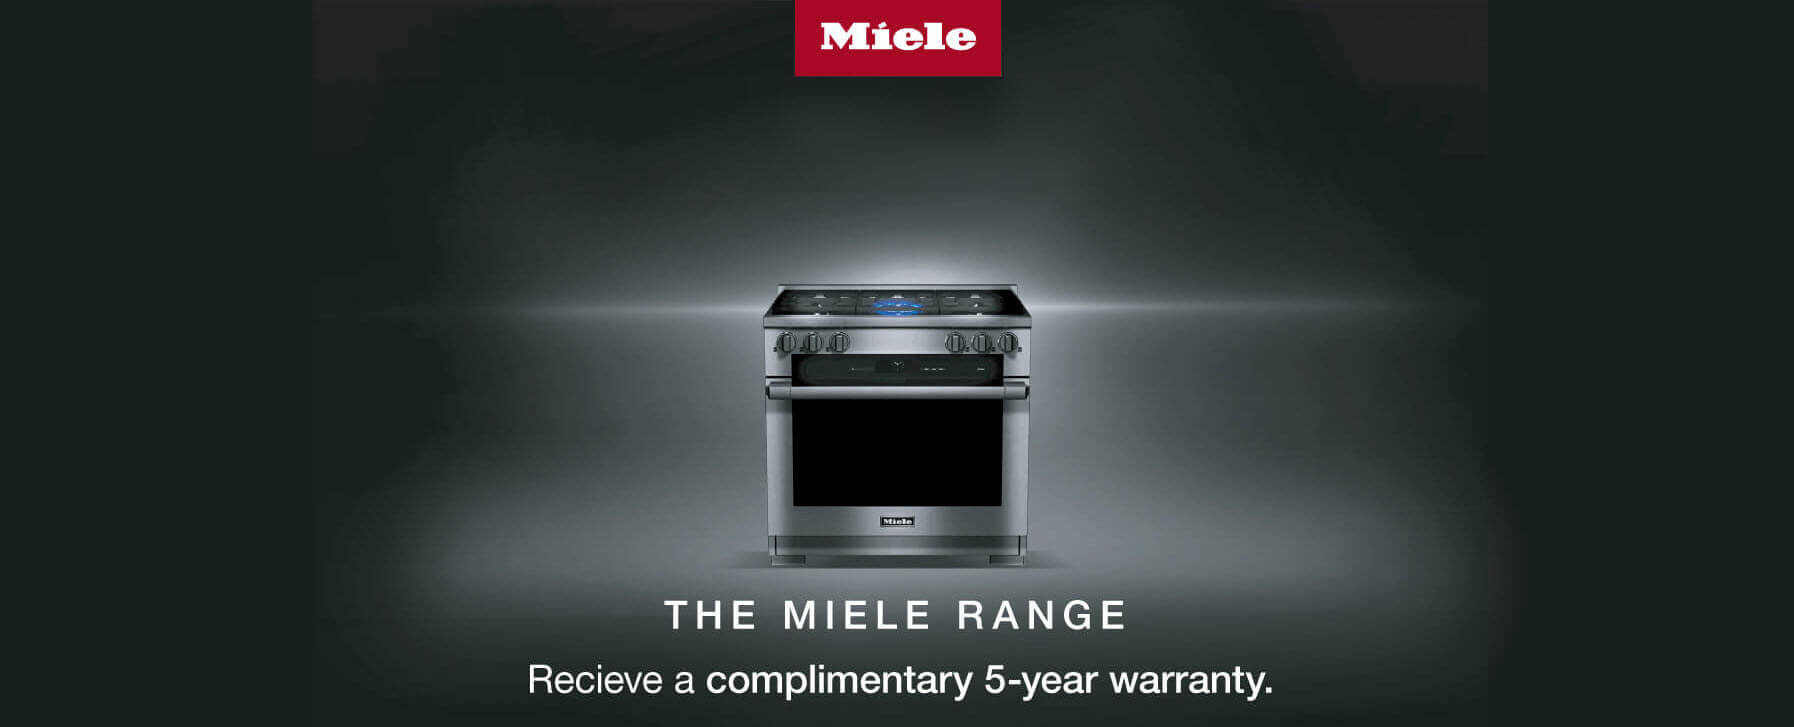 Miele 5 year warranty promo